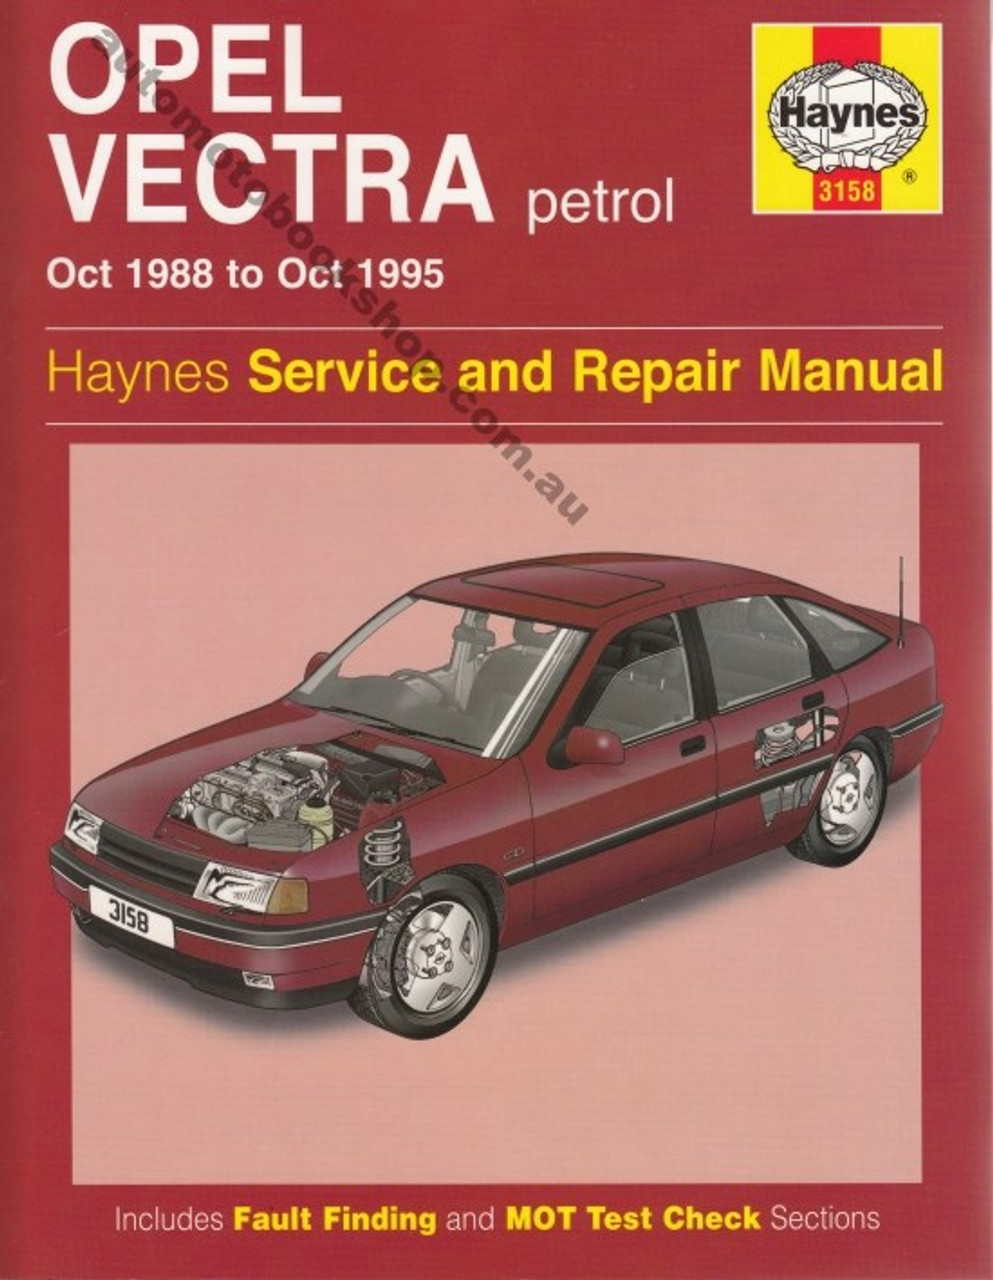 holden vectra opel 1 4l 1 6l 1 8l 2 0l petrol 1988 1995 rh automotobookshop com au Holden Vectra From Car Show in London 2008 Holden Vectra Power Steering Pump Electrical Wiring